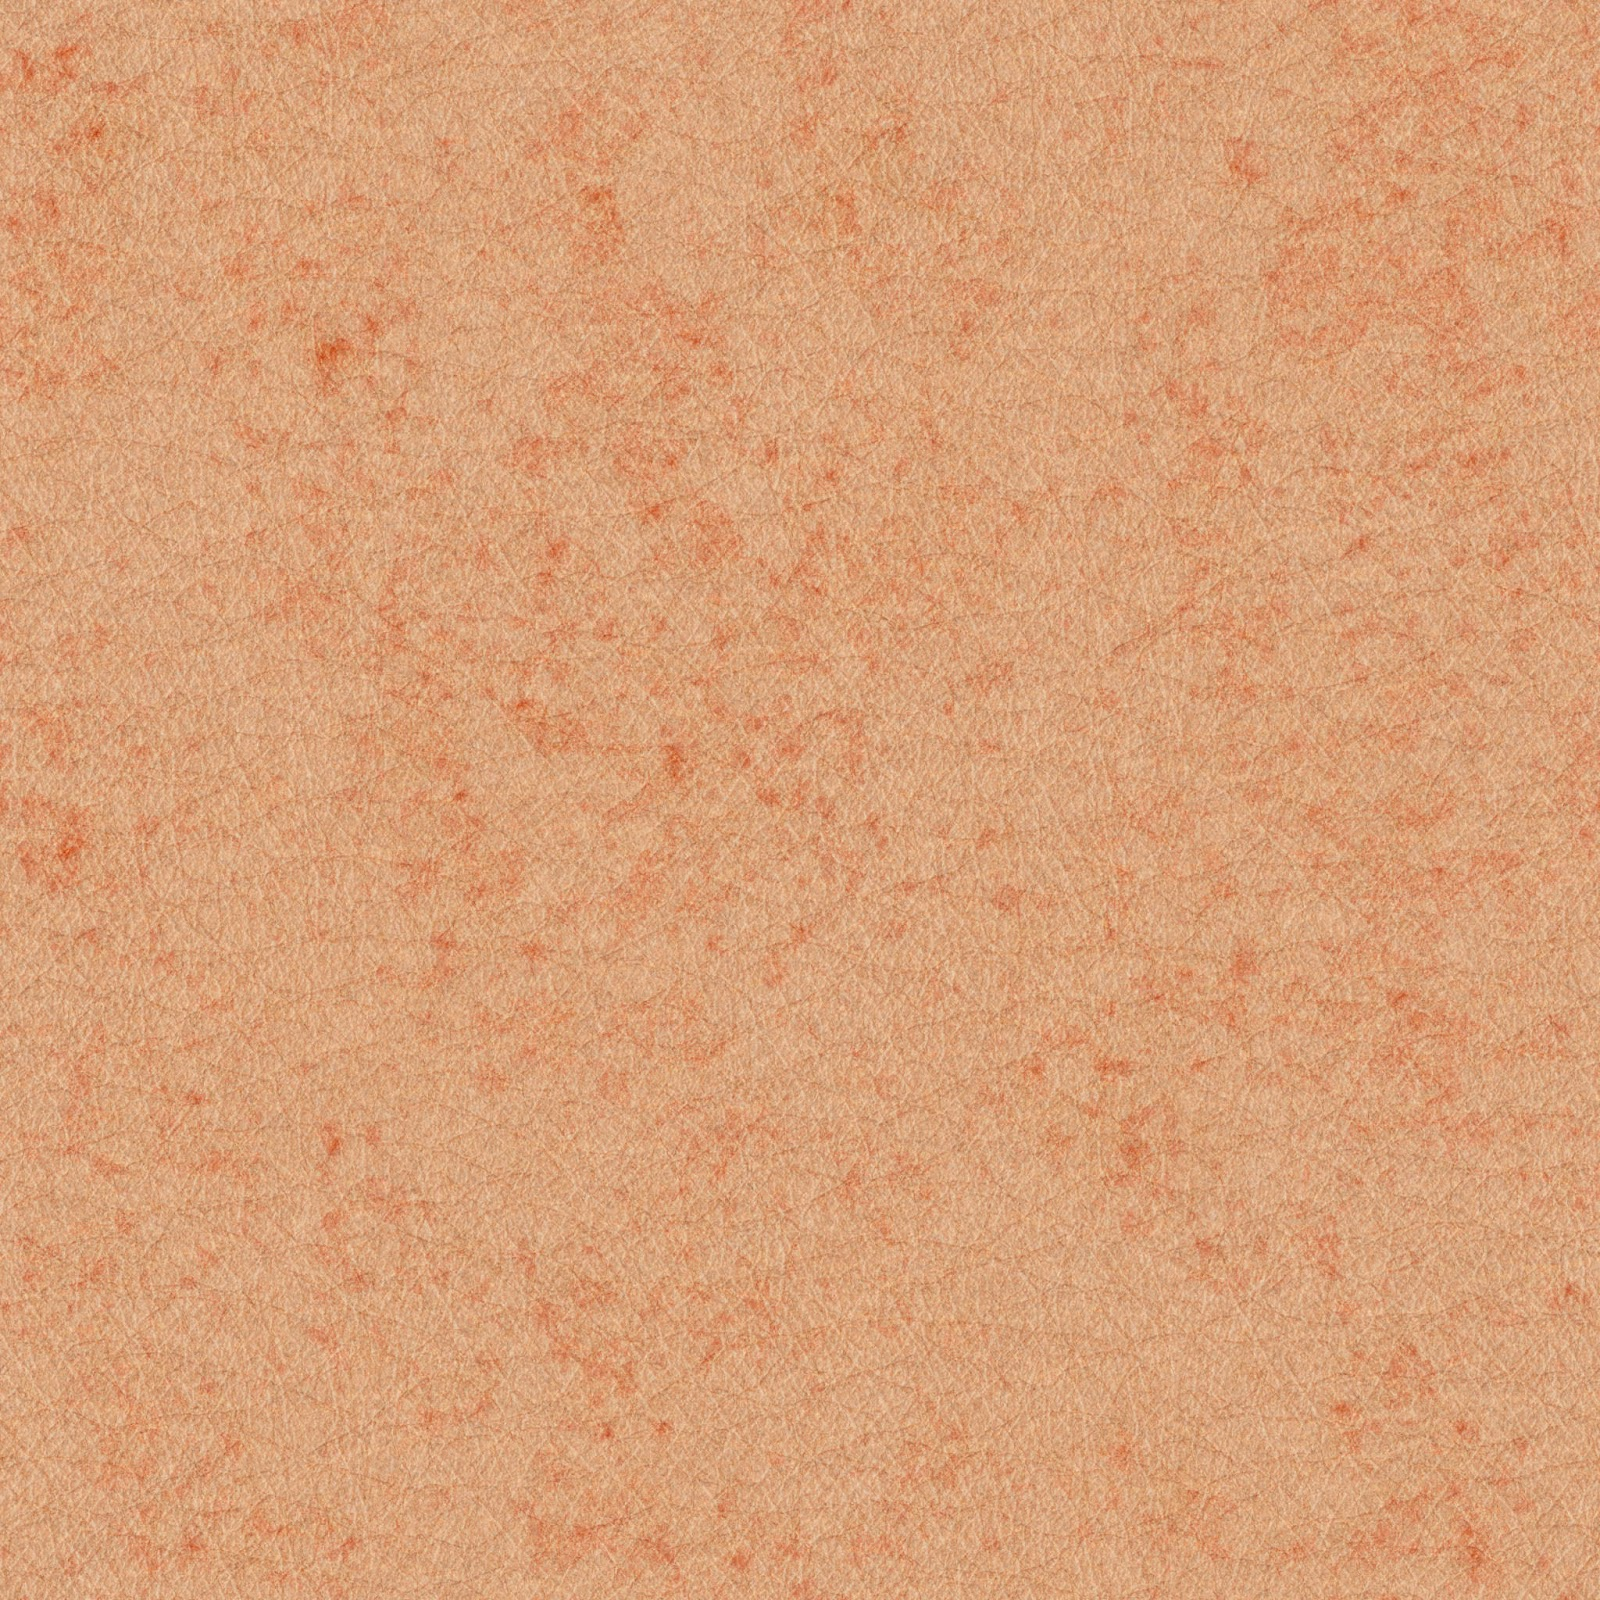 600 High Resolution Textures: Tileable Human Skin Texture #8: seamless-pixels.blogspot.com/2012/10/tileable-human-skin-texture-8...